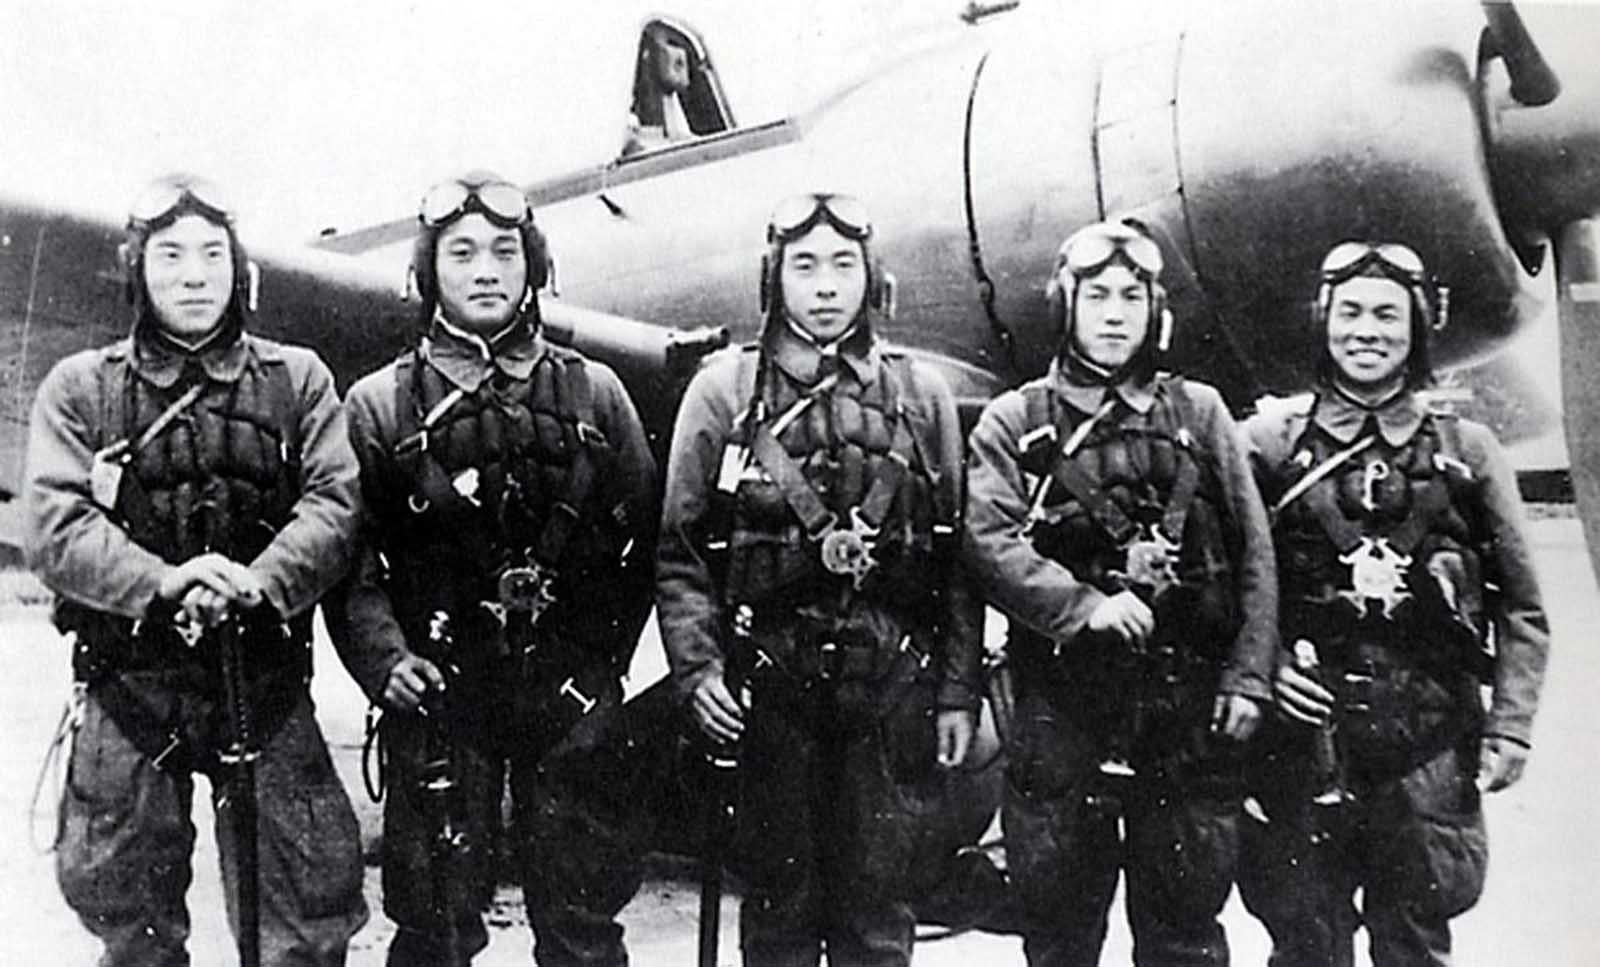 This photo provided by former Kamikaze pilot Toshio Yoshitake, shows Yoshitake, right, and his fellow pilots, from left, Tetsuya Ueno, Koshiro Hayashi, Naoki Okagami and Takao Oi, as they pose together in front of a Zero fighter plane before taking off from the Imperial Army airstrip in Choshi, just east of Tokyo, on November 8, 1944. None of the 17 other pilots and flight instructors who flew with Yoshitake on that day survived. Yoshitake only survived because an American warplane shot him out of the air, he crash-landed and was rescued by Japanese soldiers.